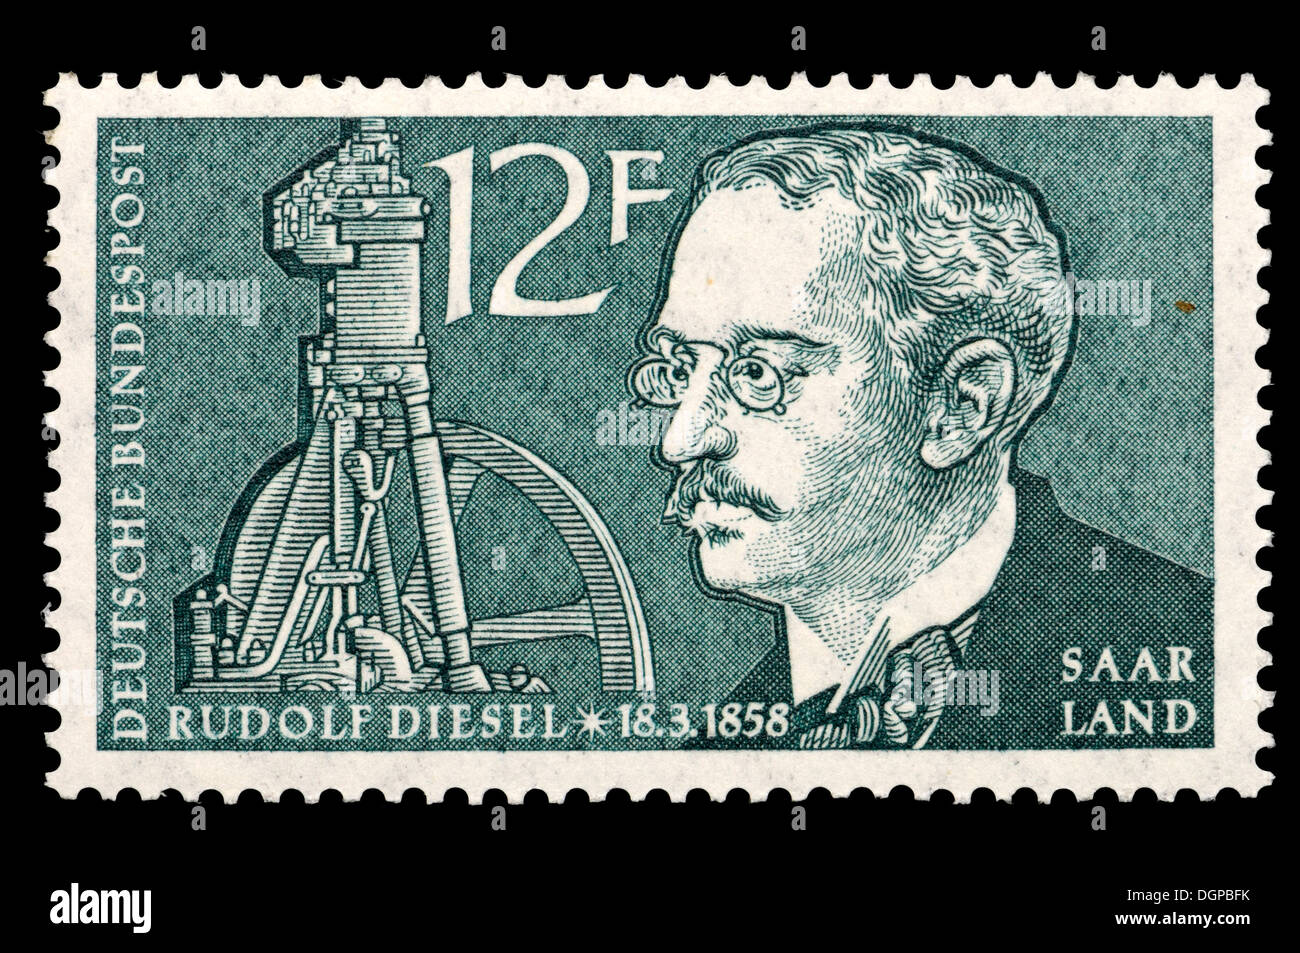 rudolph christian karl diesel Rudolf christian karl diesel, born march 18, 1858, was a german inventor and mechanical engineer, famous for the invention of the diesel engine.